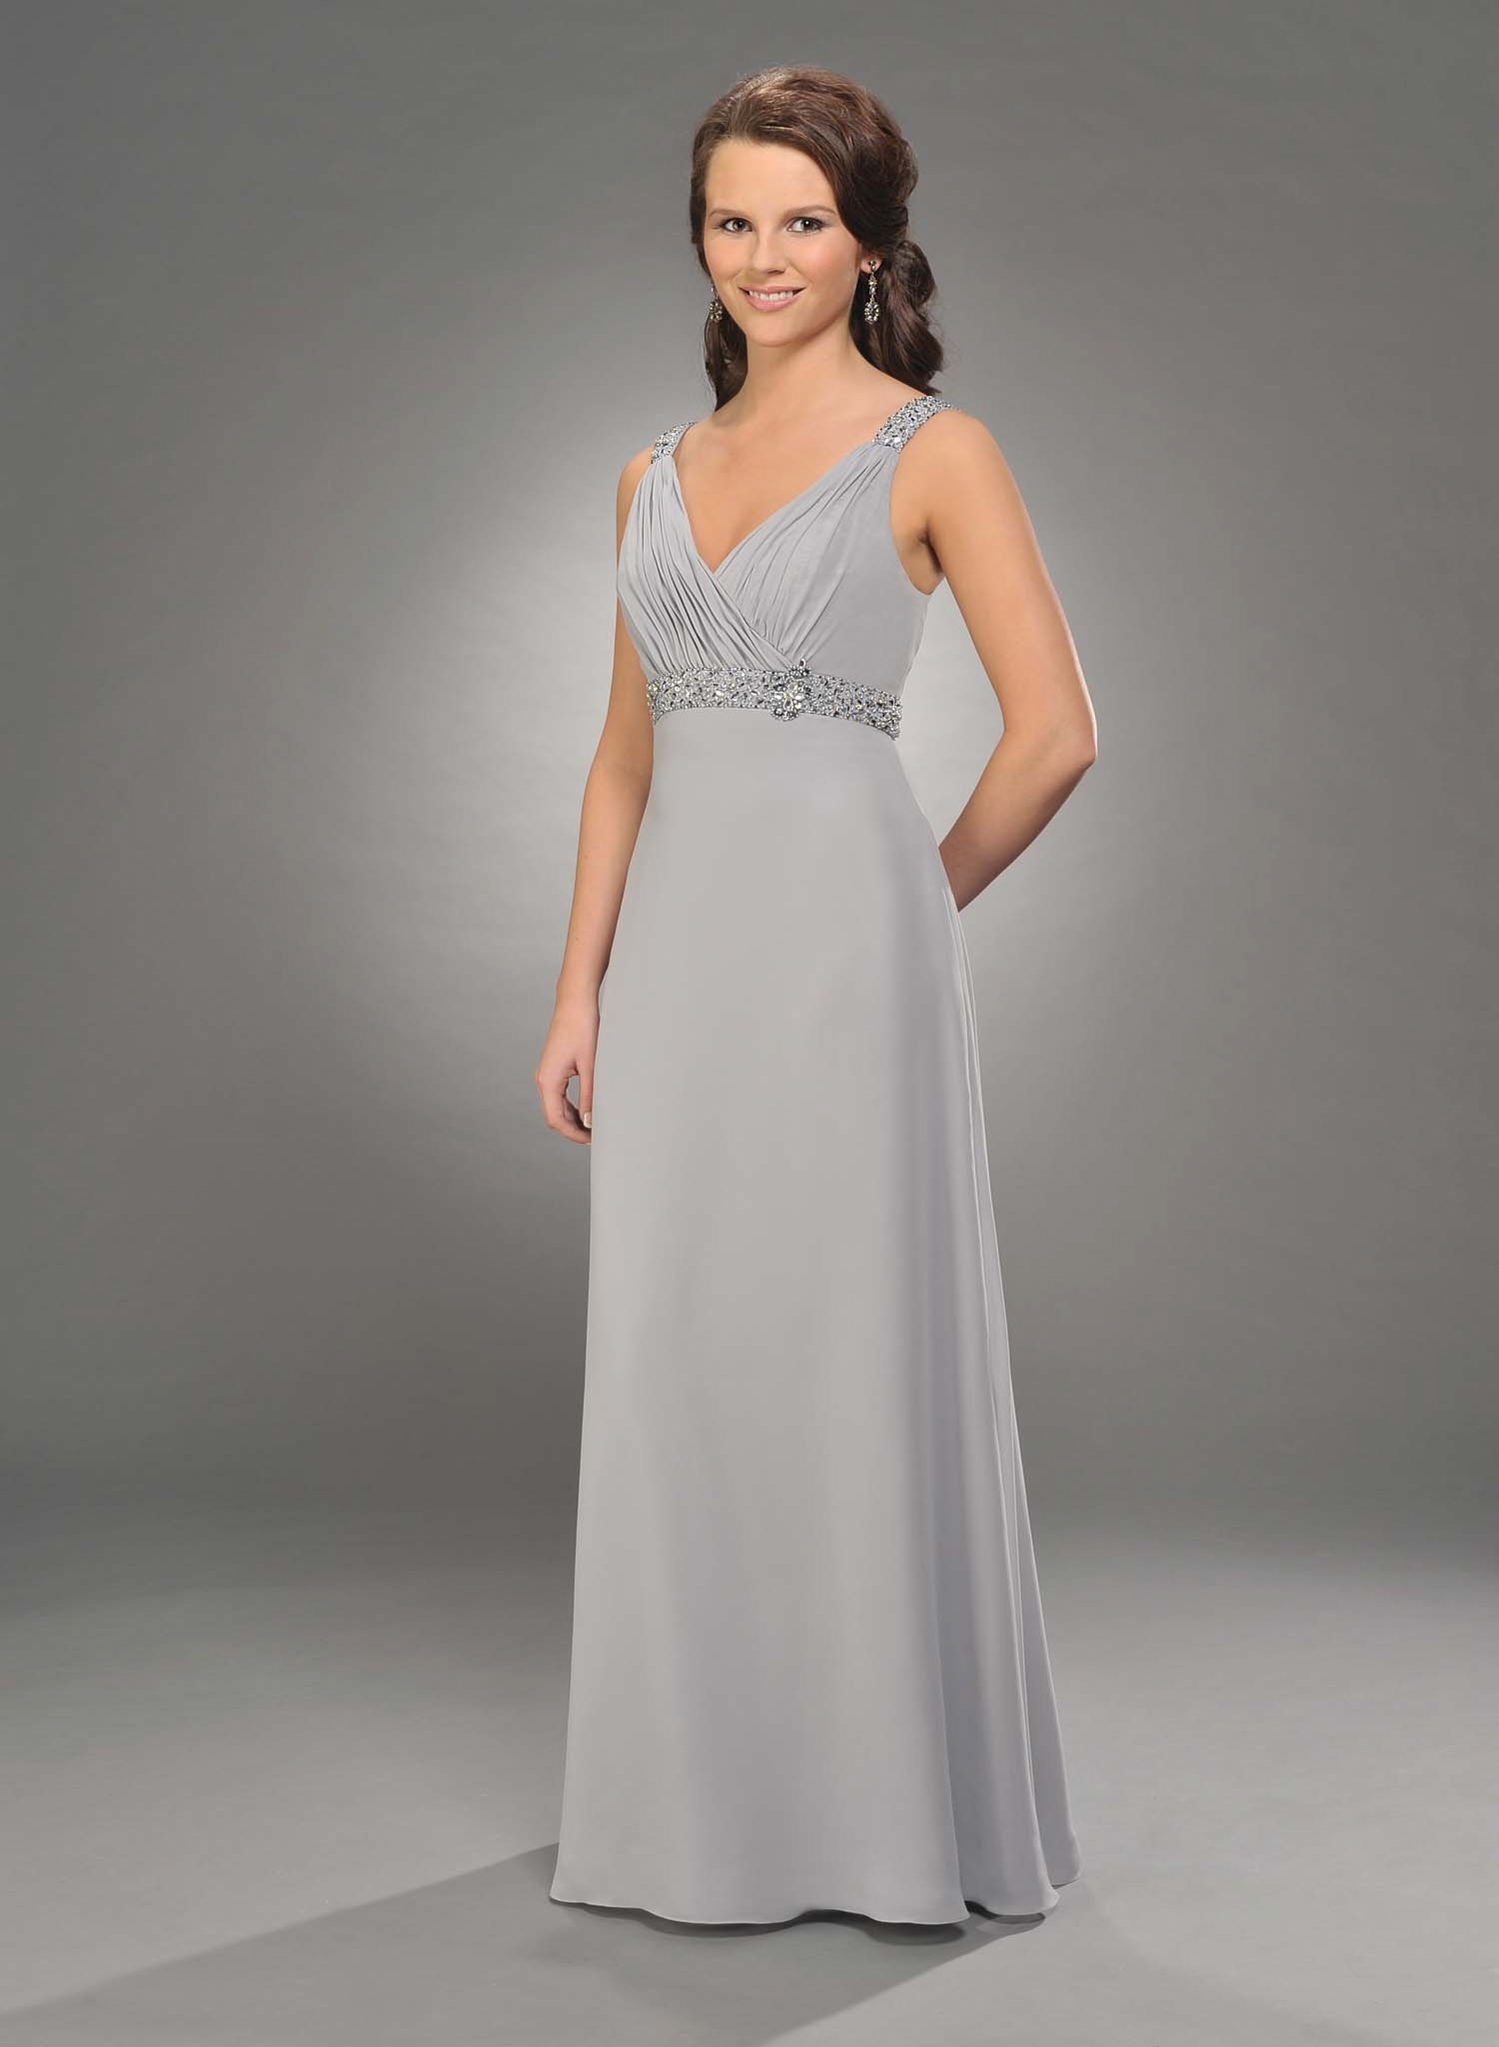 3c9d867ac26 Silver Empire V Neck and Strap Low Back Full Length Chiffon Prom Dresses  With Beading and Drapes